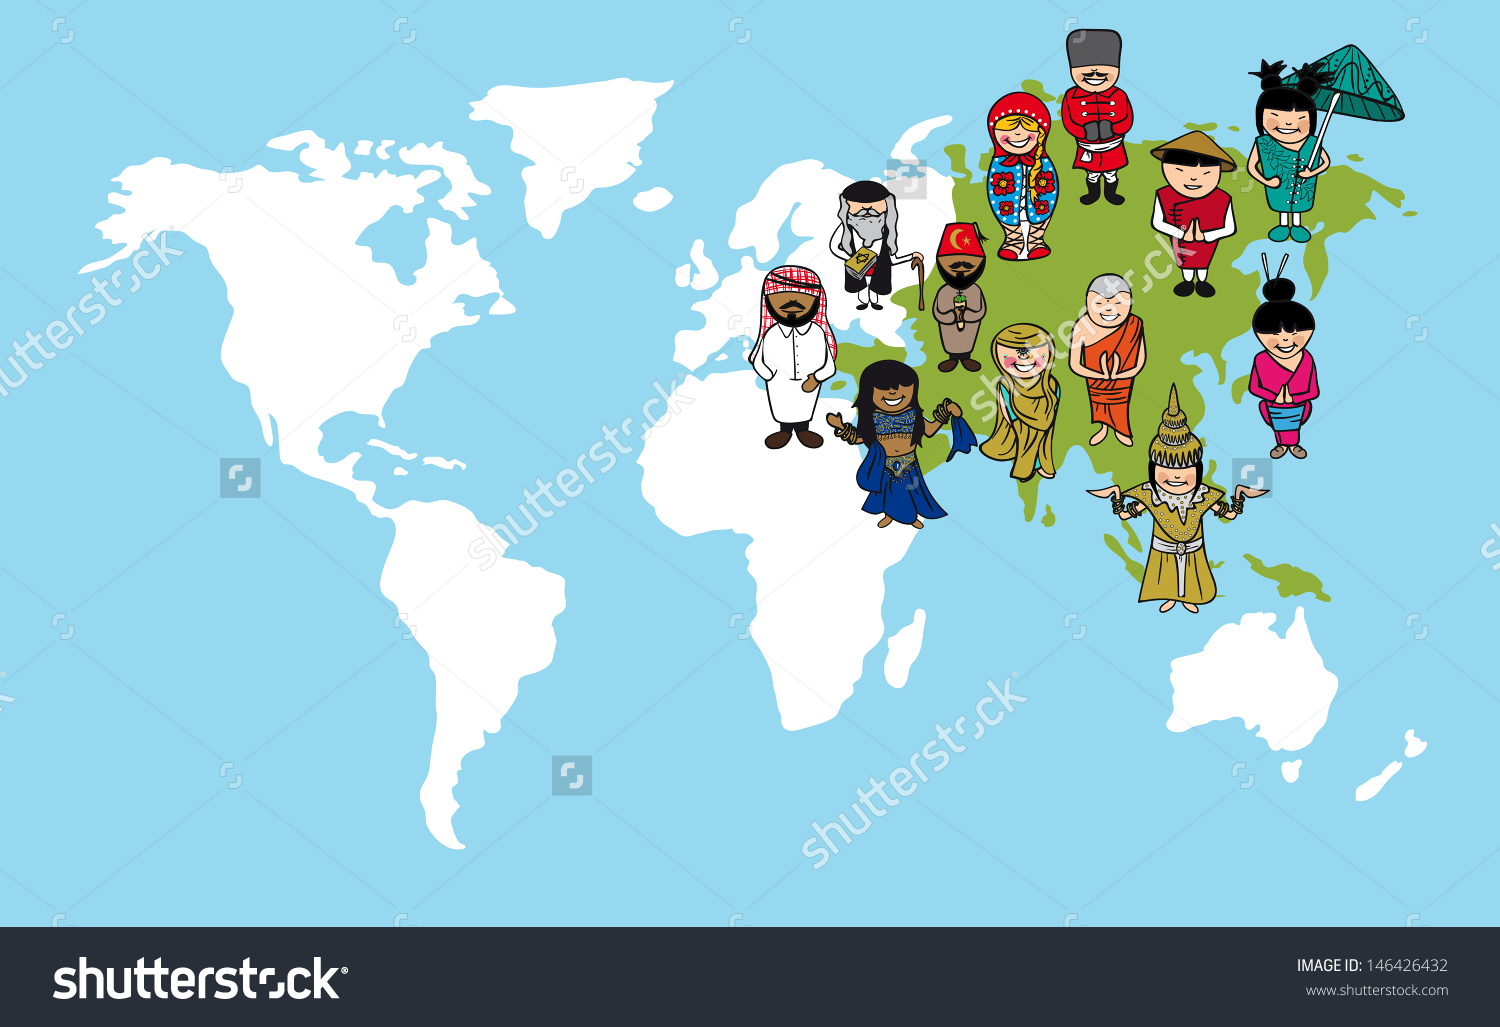 Coture clipart continent People distinctive illustration with Vector